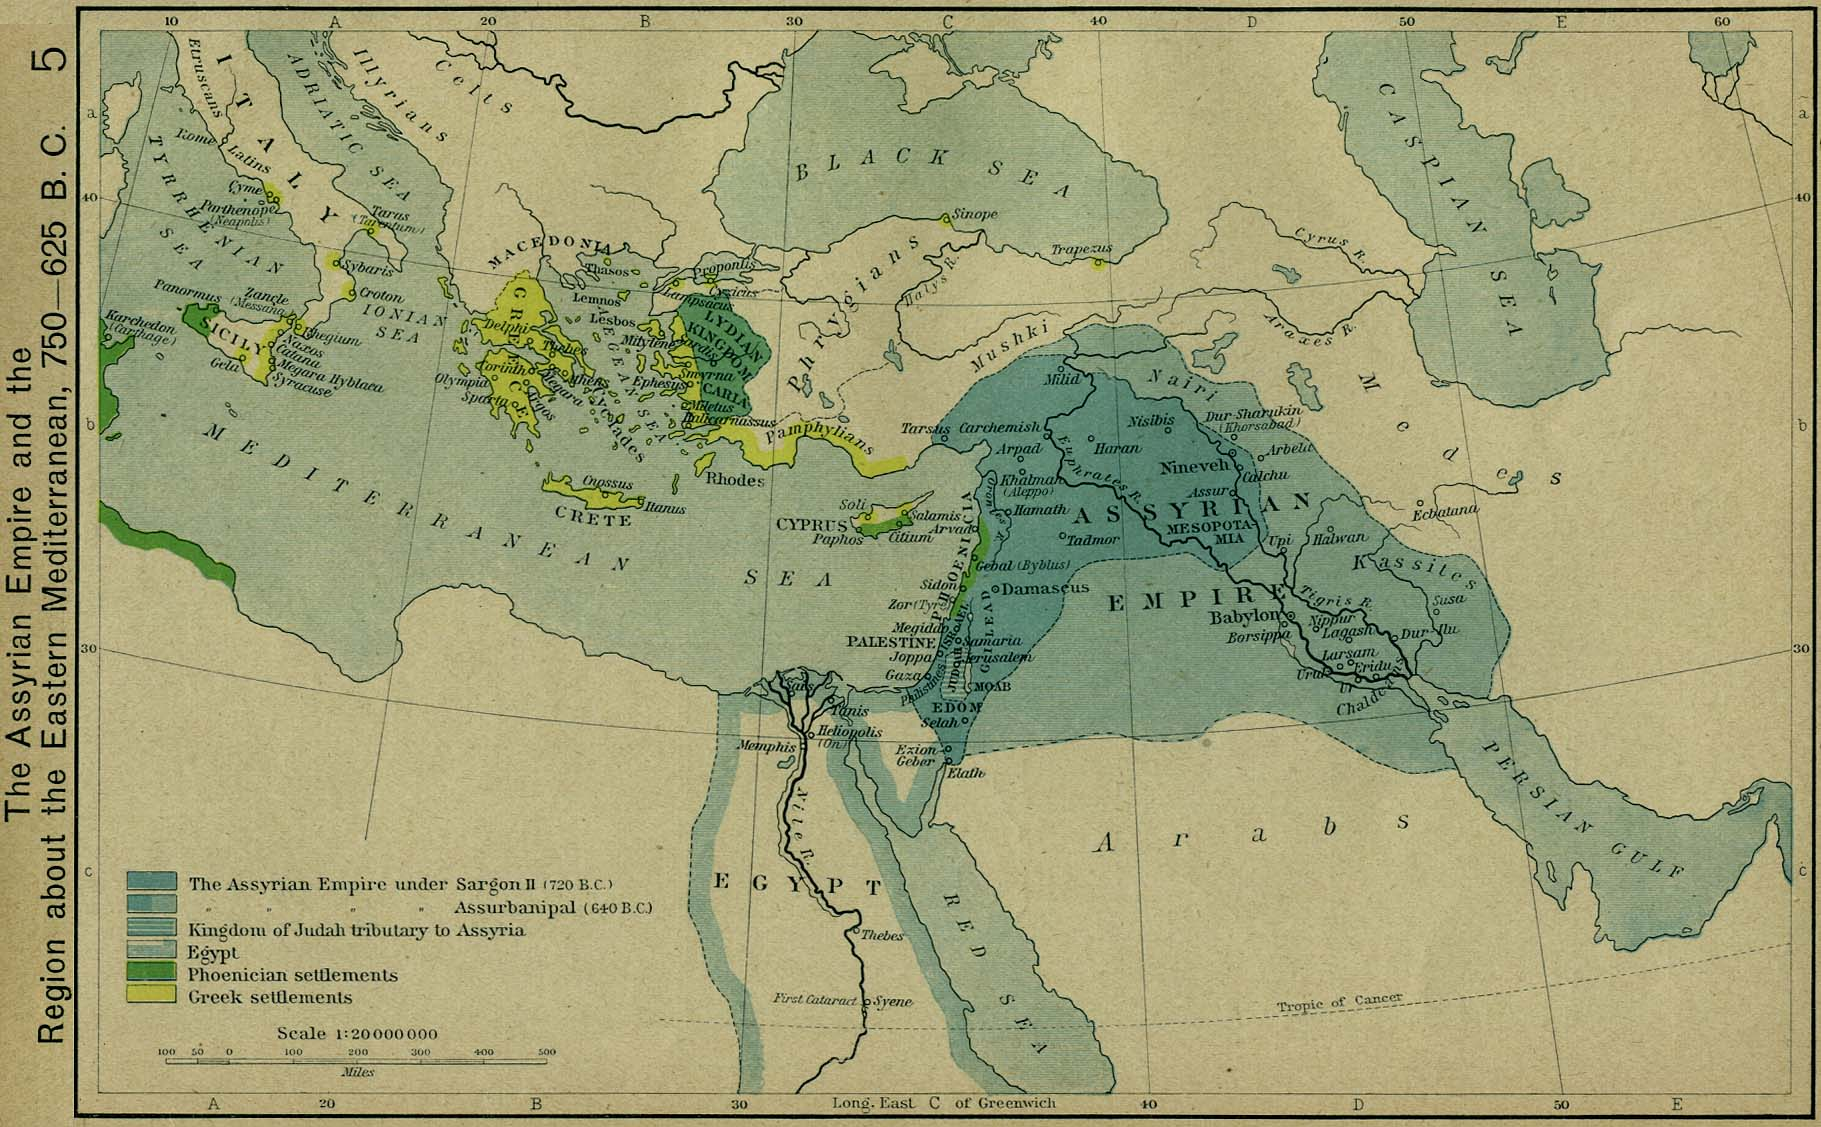 fertile crescent The fertile crescent was an arc of rich land that extended from the persian gulf up and around the tigris euphrates rivers and westward to the mediterranean sea and down into egypt and the nile river.